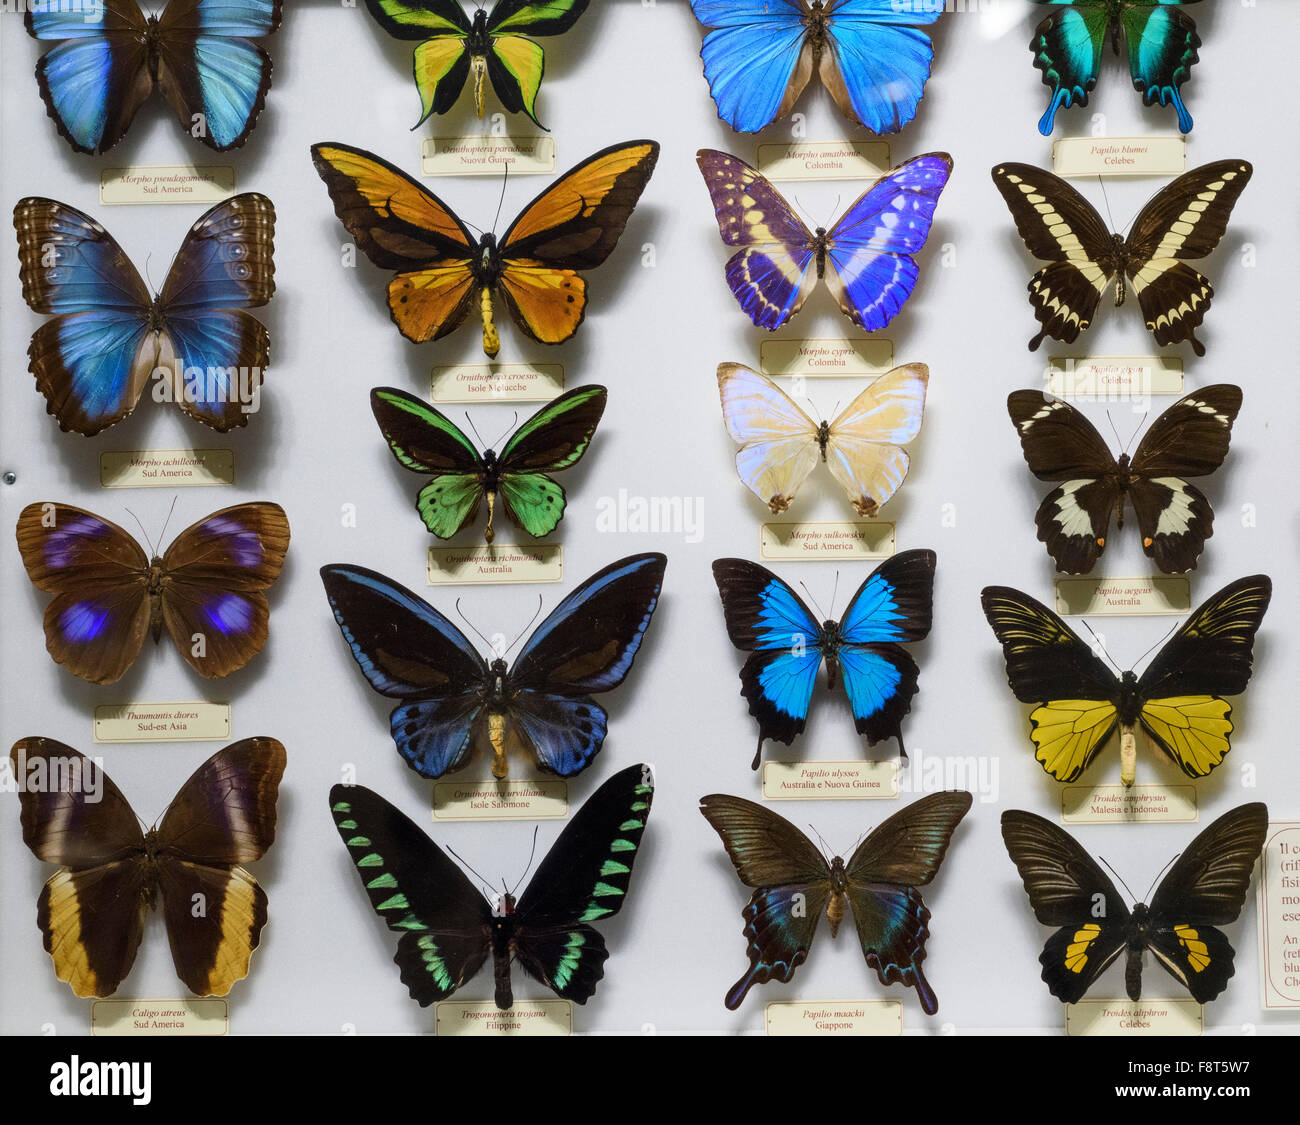 Merveilleux Colouful Display Of Butterflies At La Specola, Museum Of Zoology And  Natural History